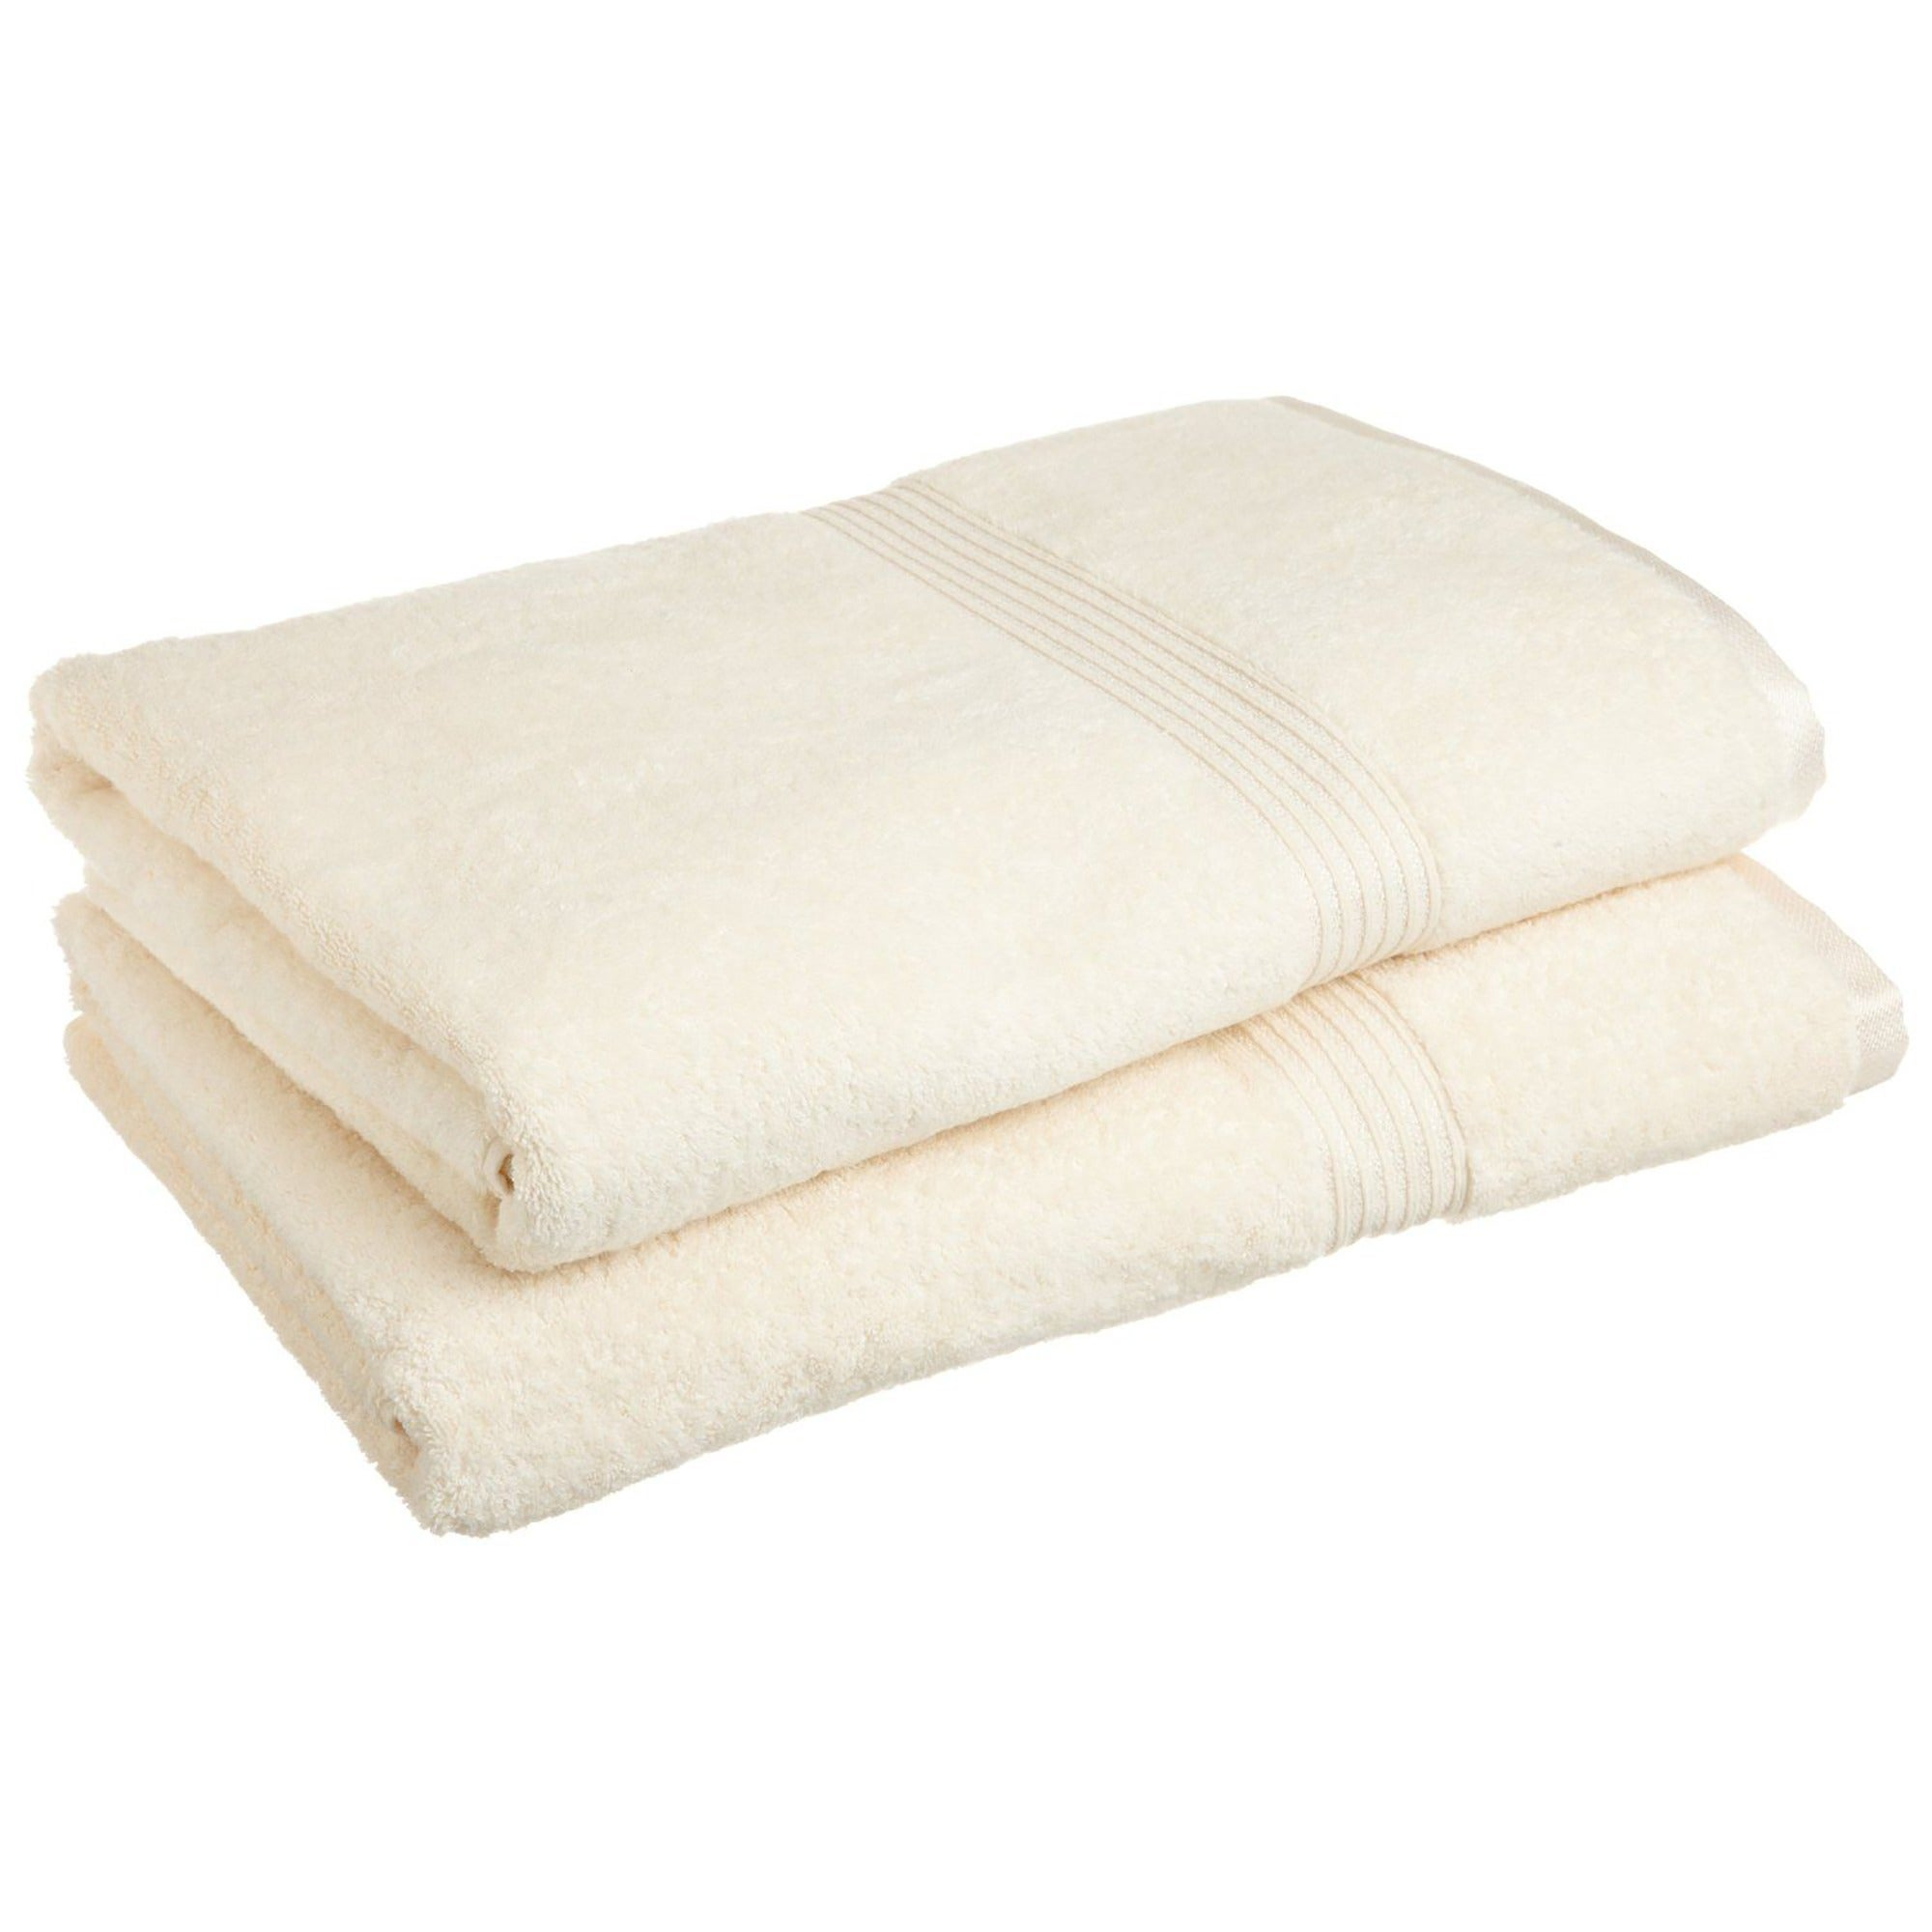 Extra large Bath Sheets 100/% Egyptian Combed Cotton Super soft Towels 600 gsm